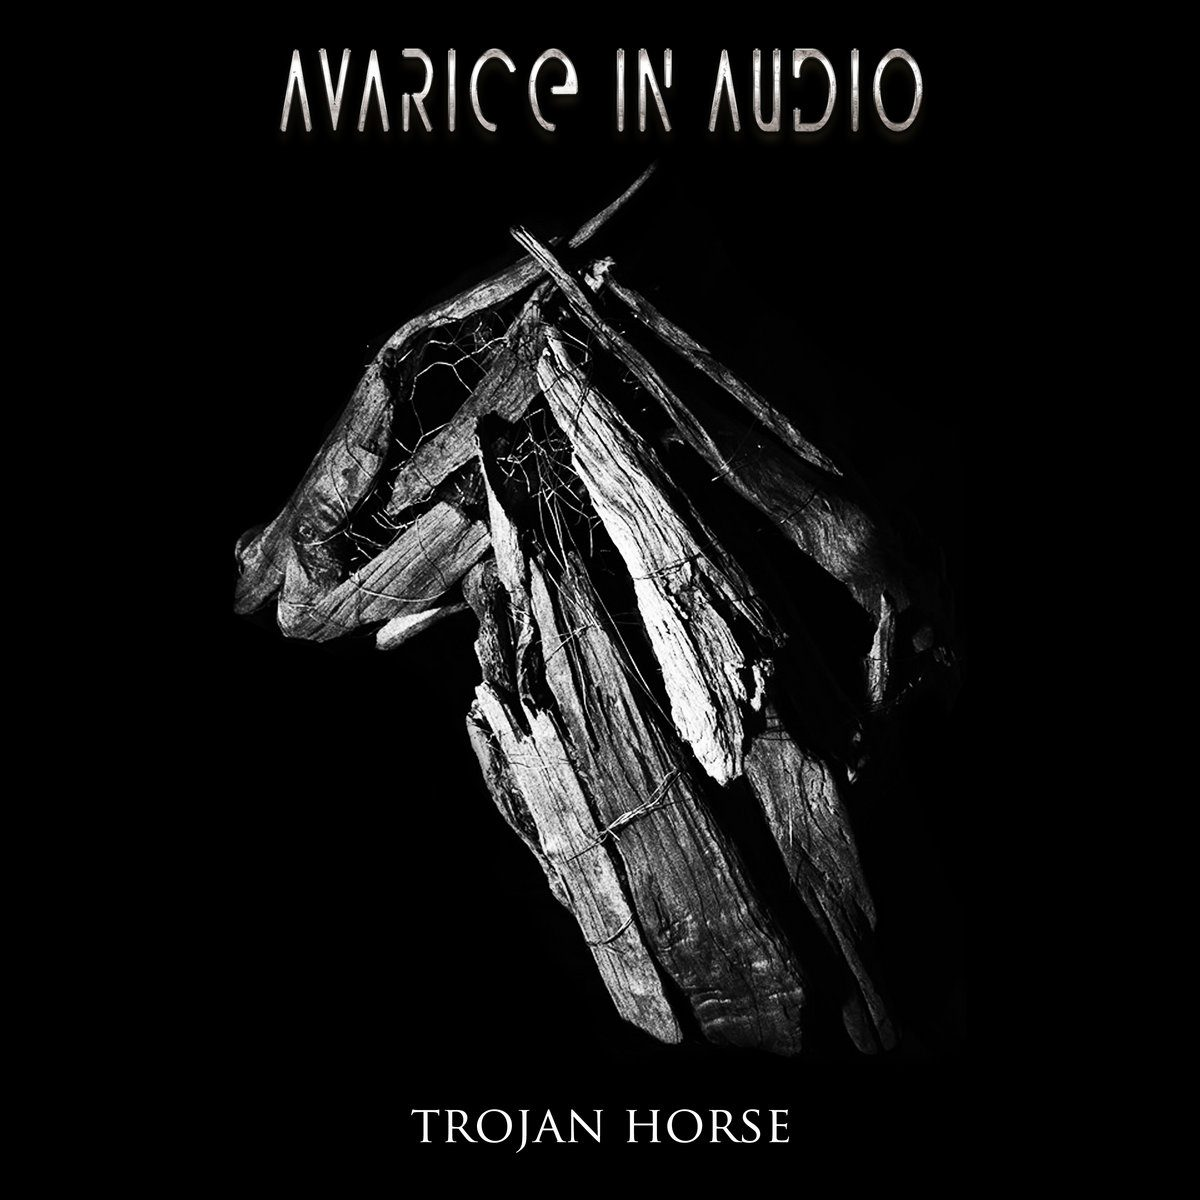 Avarice In Audio land new EP: 'Trojan Horse' - download available via Bandcamp + video